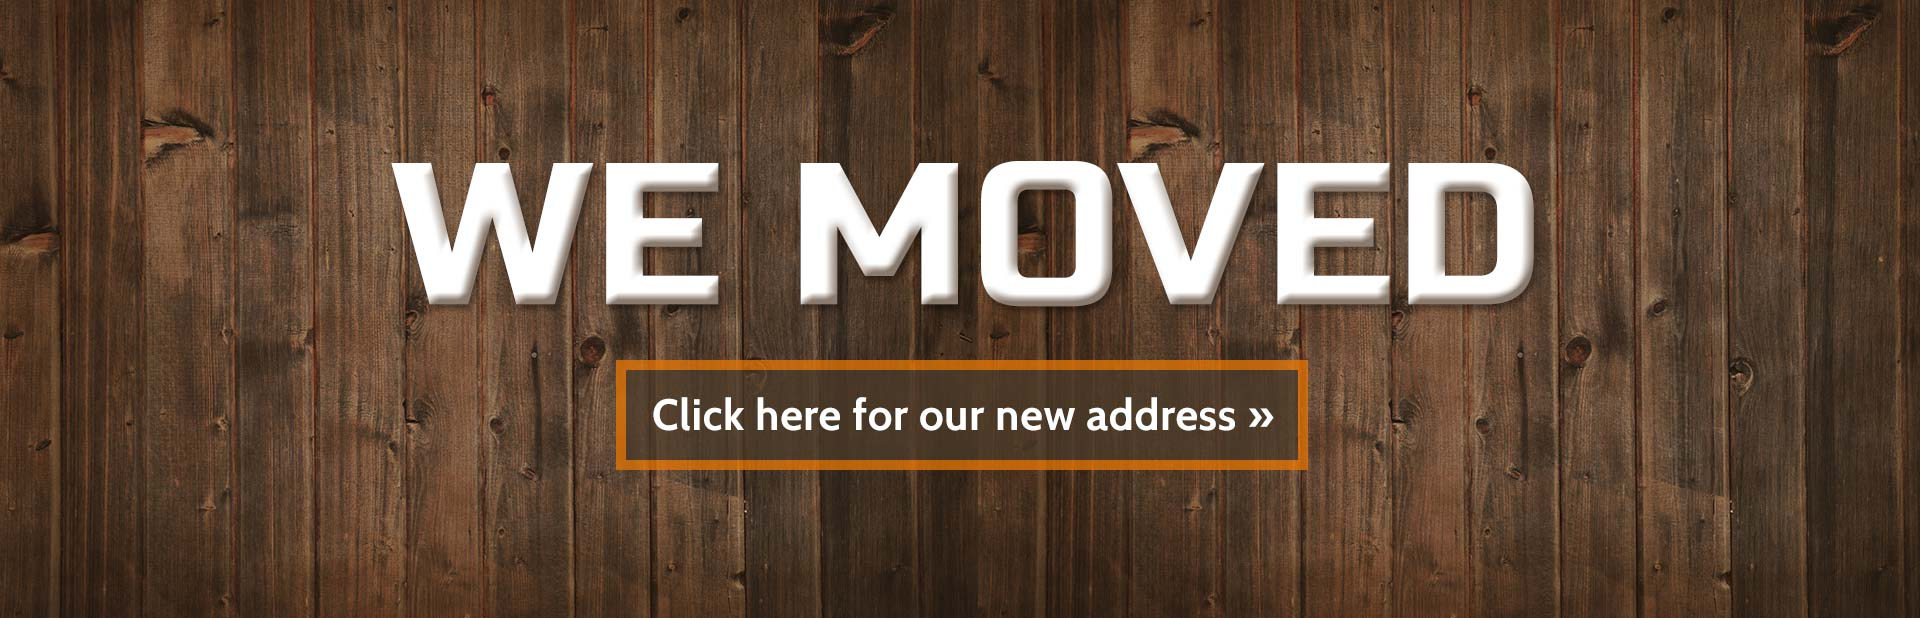 We moved! Click here for our new address.